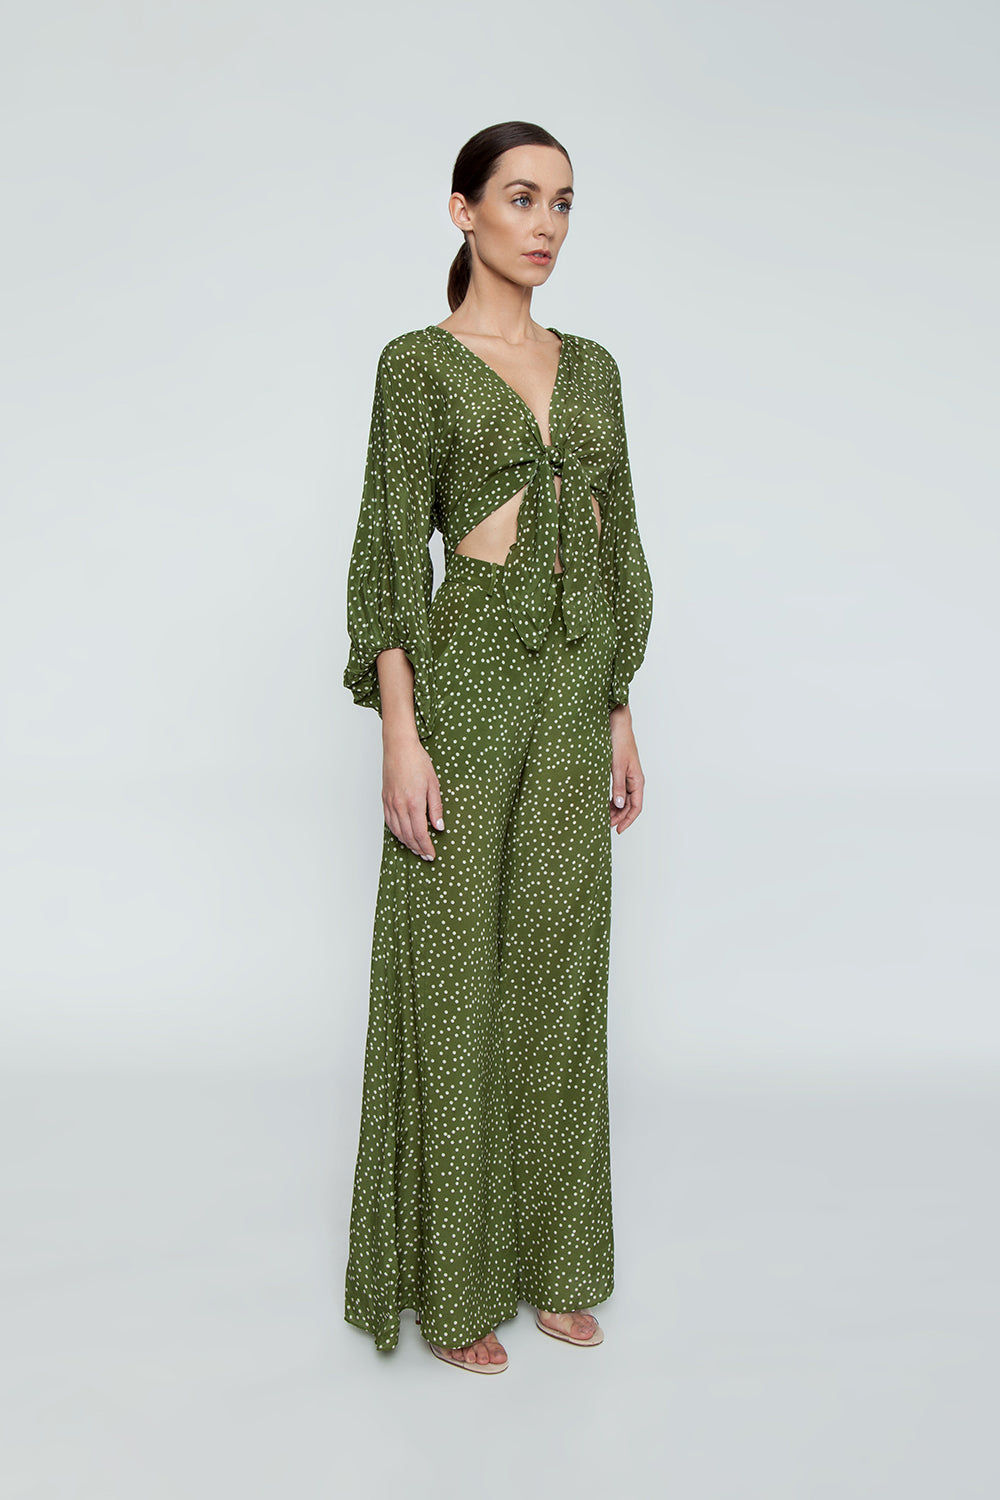 ADRIANA DEGREAS Silk Crepe De Chine Wide Leg Pants - Mille Punti Green Dot Print Pants | Mille Punti Green Dot Print| Adriana Degreas Silk Crepe De Chine Wide Leg Pants - Green Dot Print. Features:  High waisted wide leg pants Perfect for summer days Cut from airy silk Main: 100% silk Side View